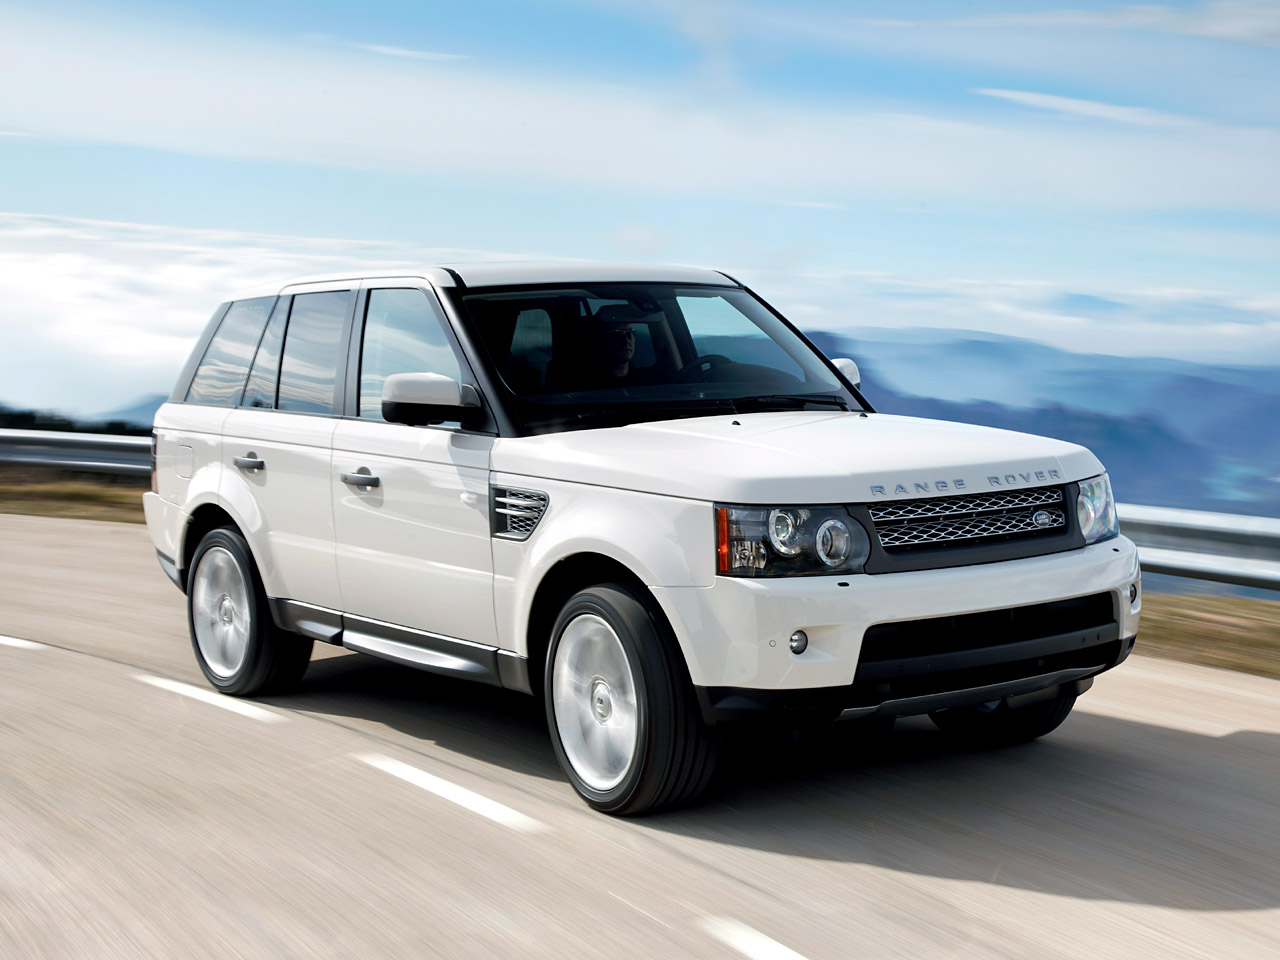 2010 land rover range - photo #34